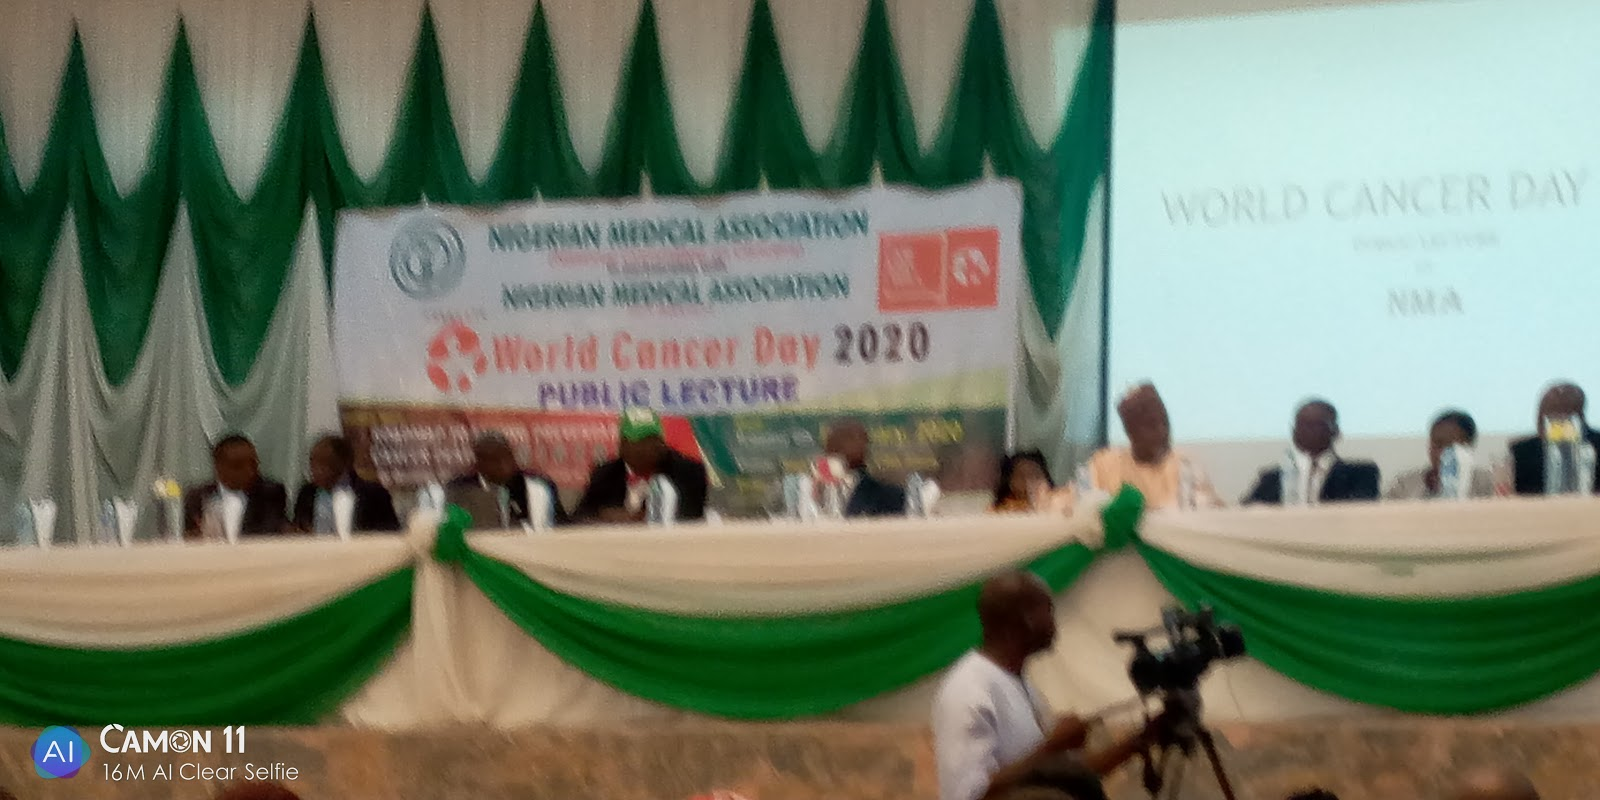 Nigeria Medical Association Marks World Cancer Day:Roadmap To Ending Preventable Cancer Death